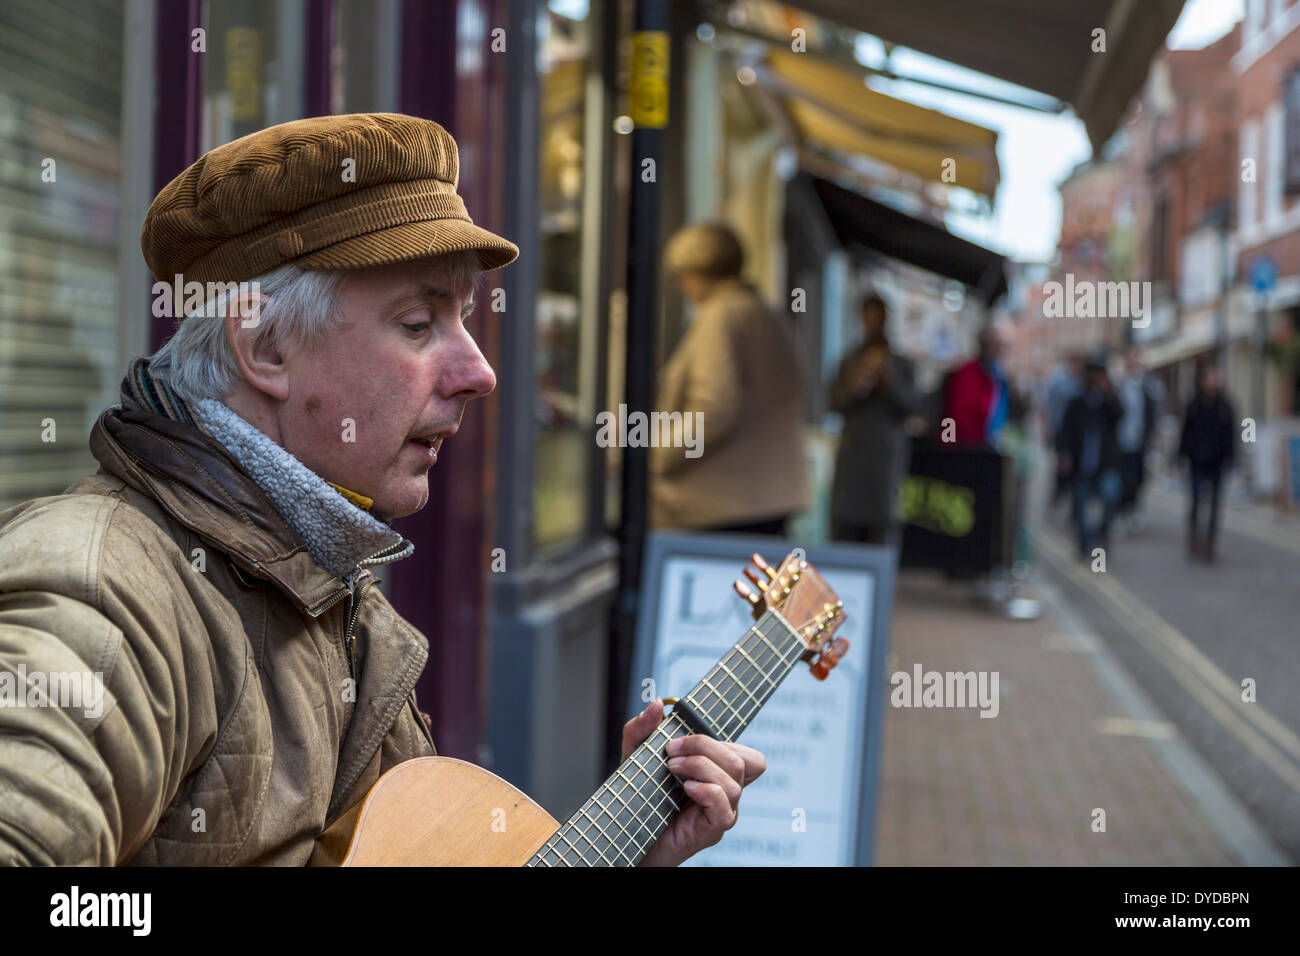 Busker playing a guitar in a busy street. - Stock Image